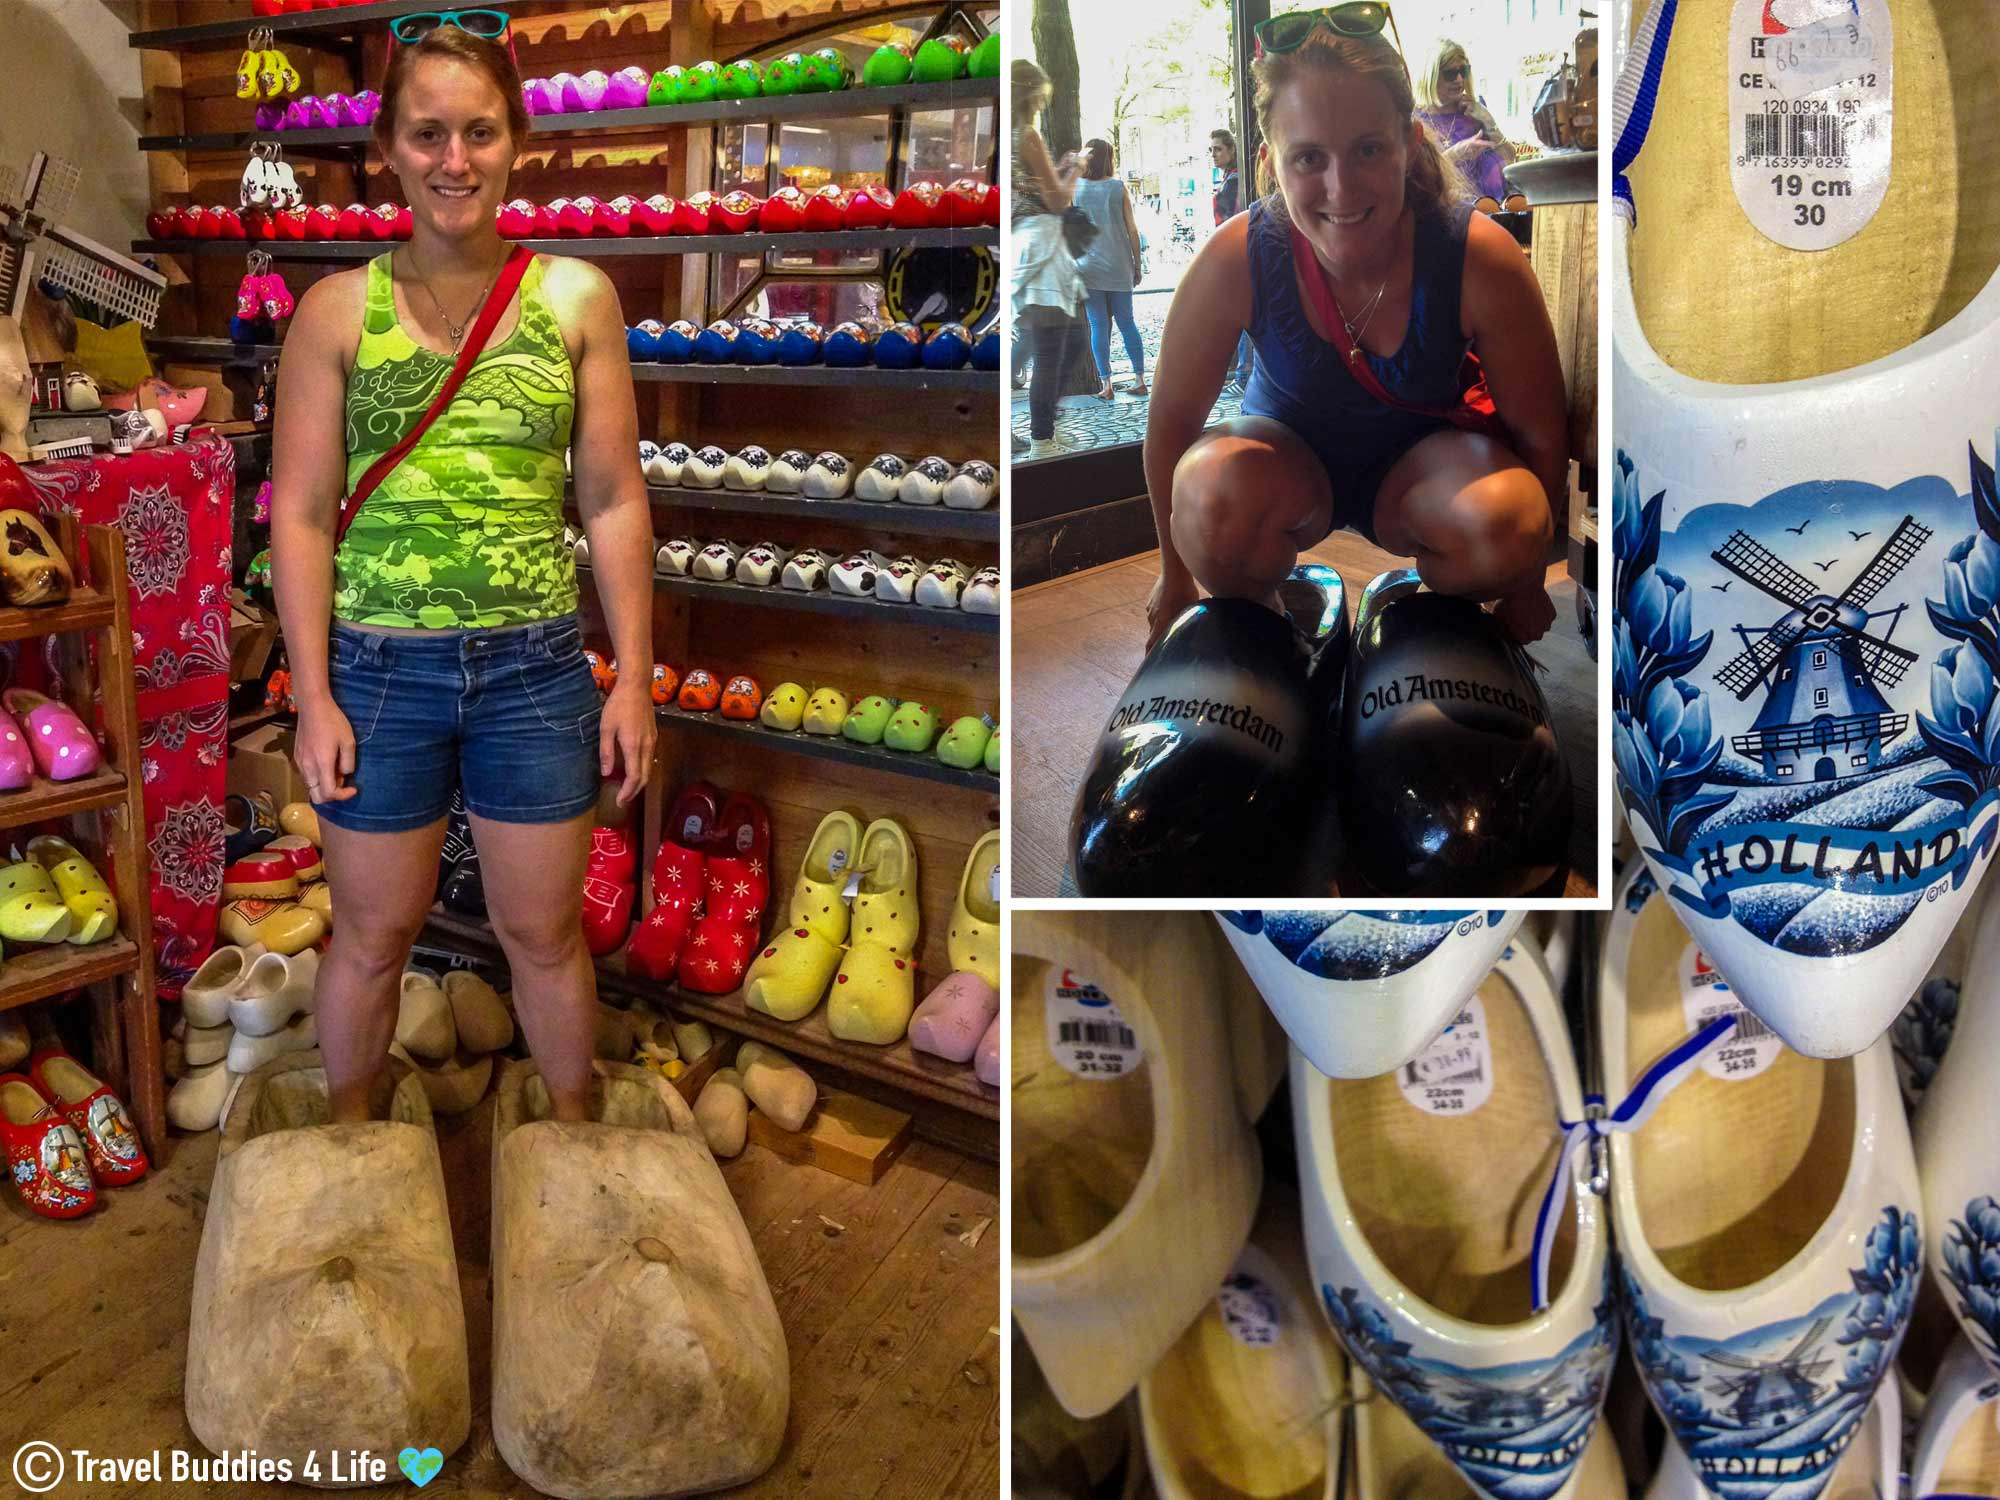 Ali Trying On A Wide Variety Of Iconic Dutch Clogs In The Netherlands, Europe